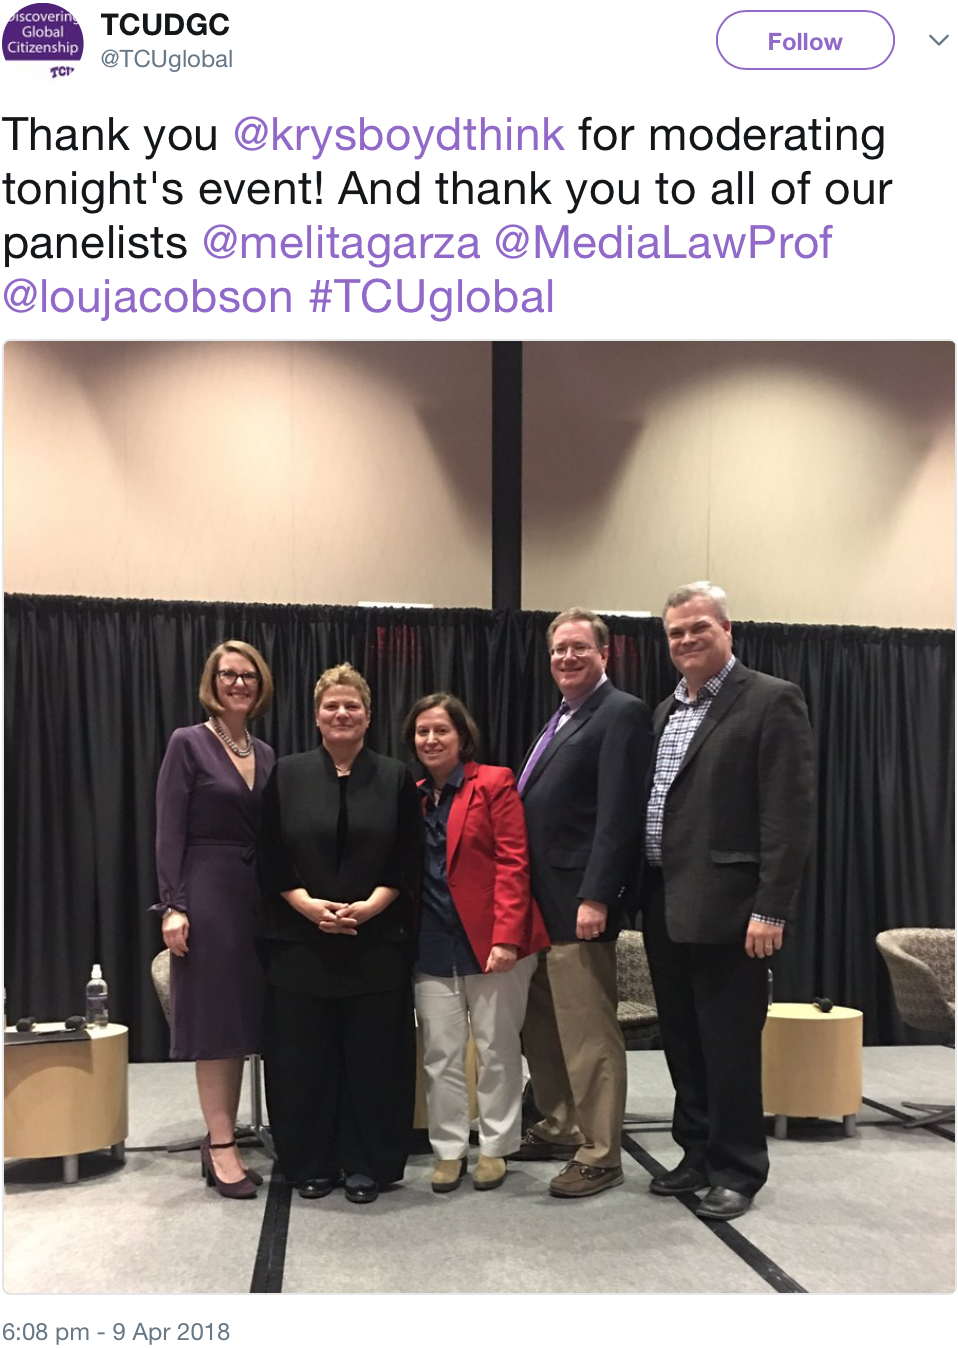 Screen Shot 2018-05-31 at 2.12.35 PM.png